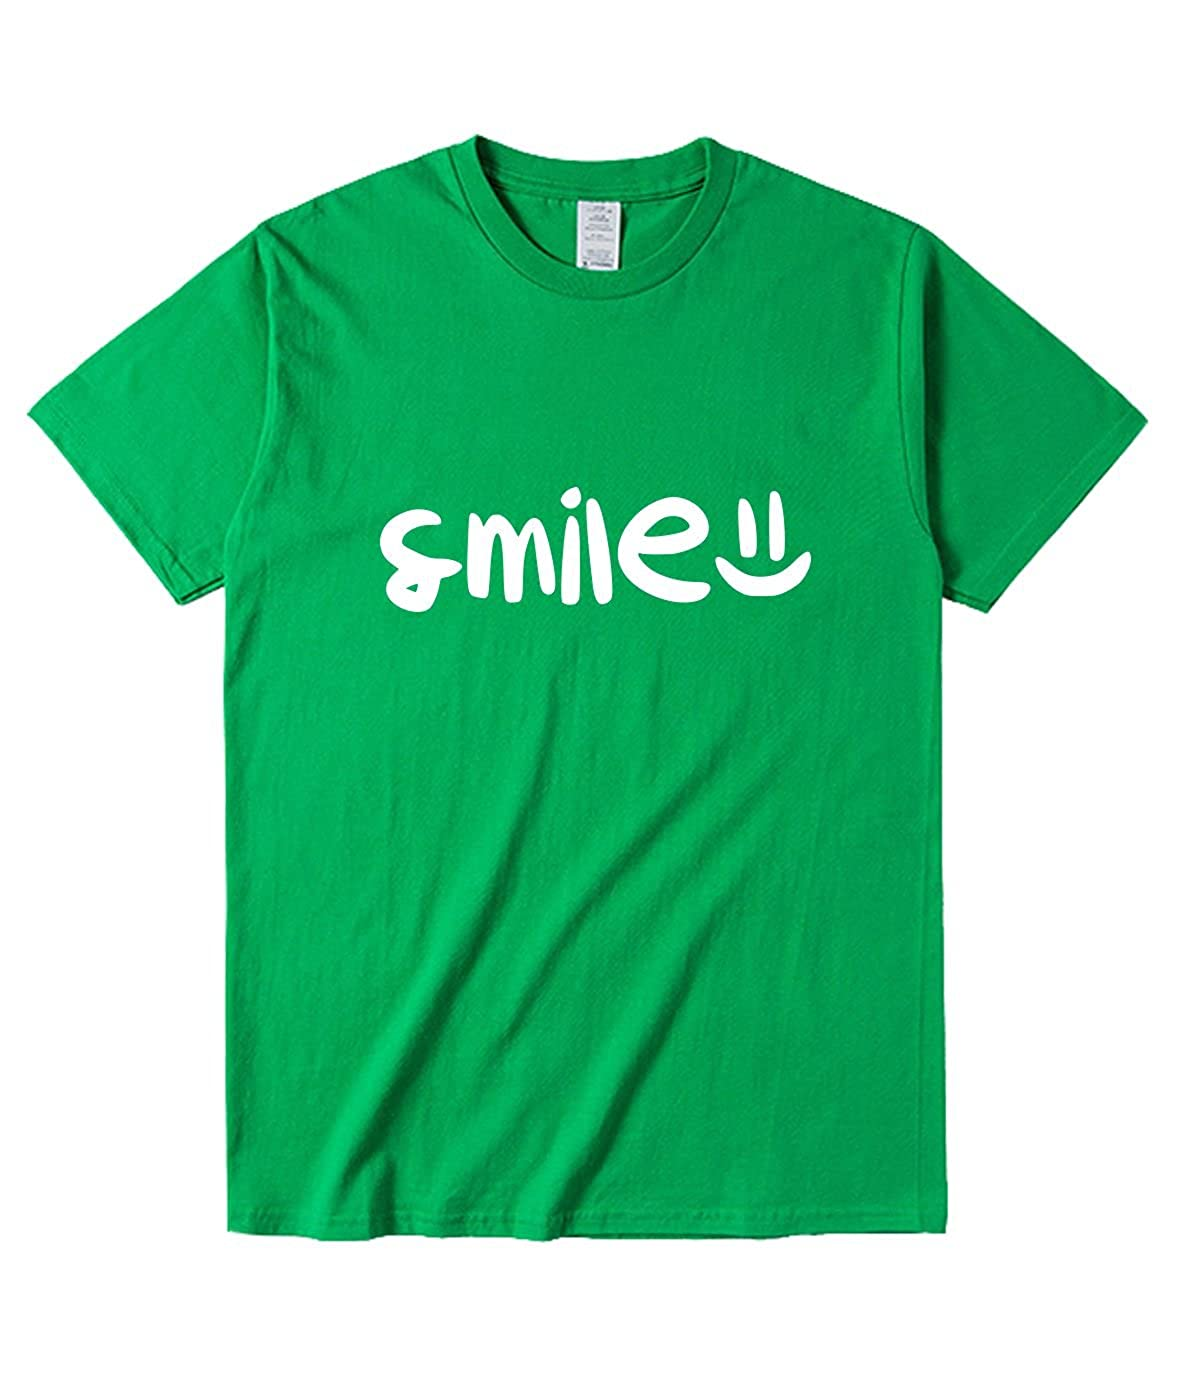 Dddxxx Smile Tee For S Shirts